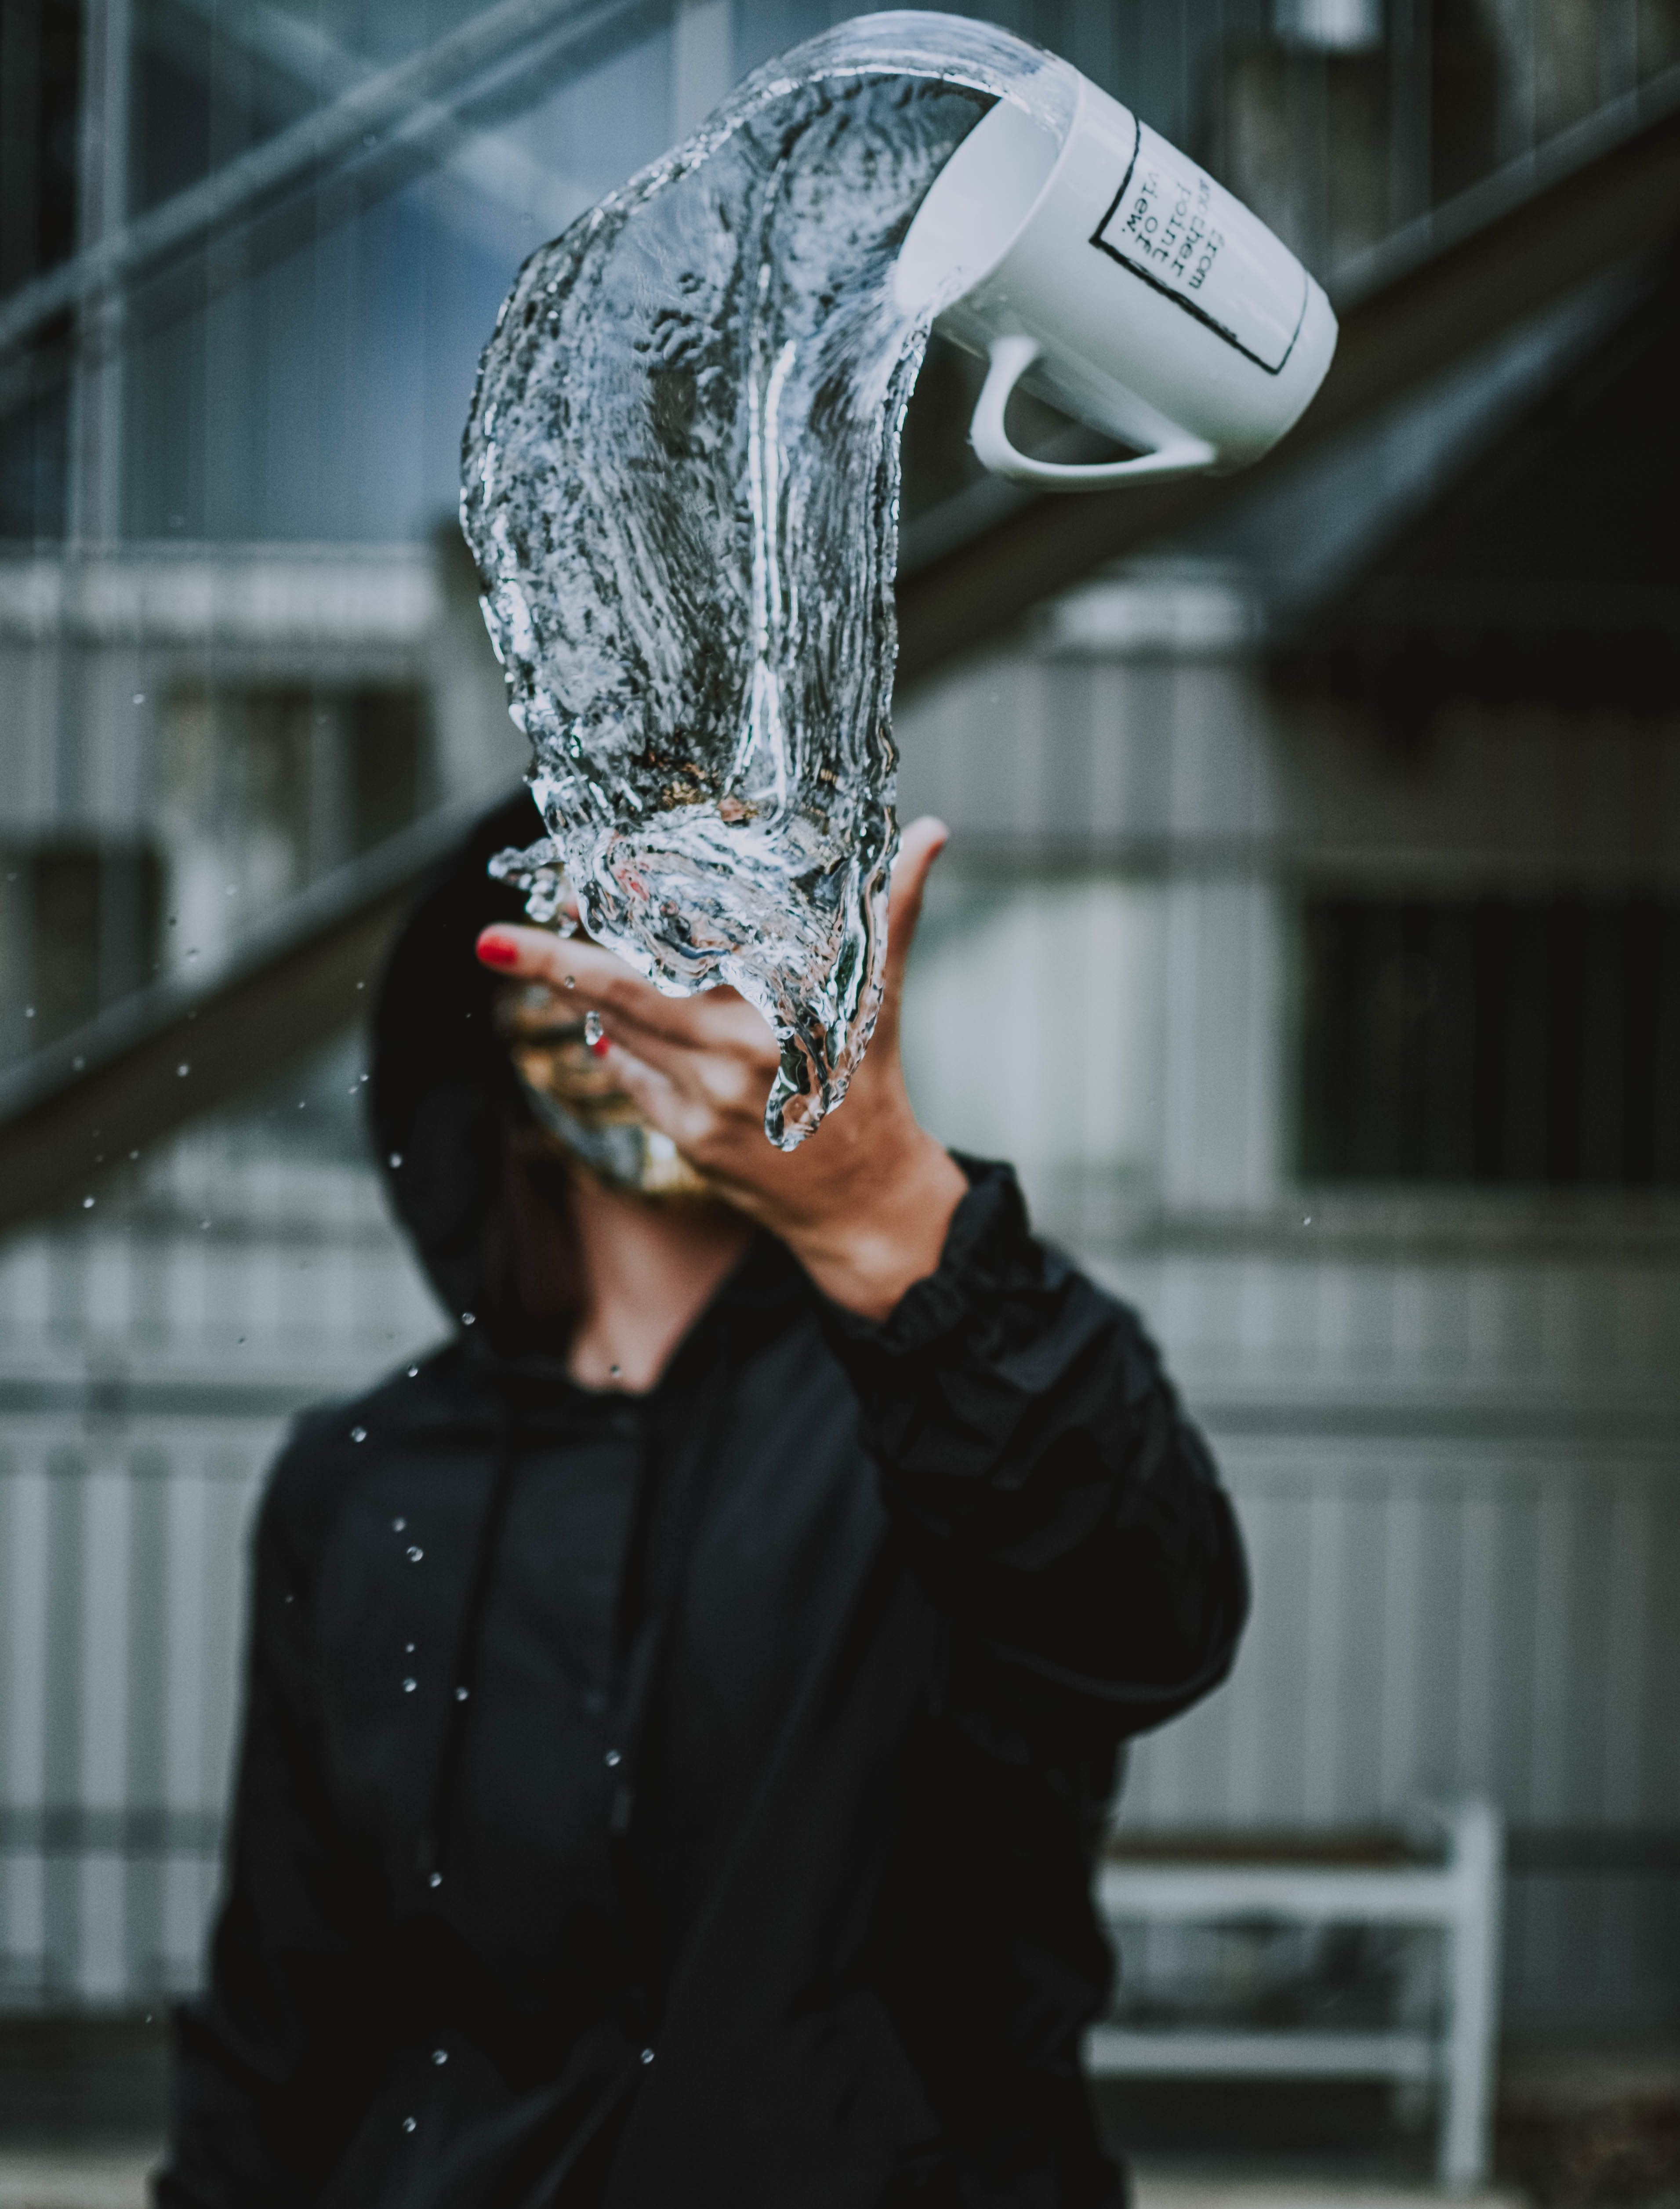 Mug in Mid Air Pouring Clear Liquid on Man's Hand